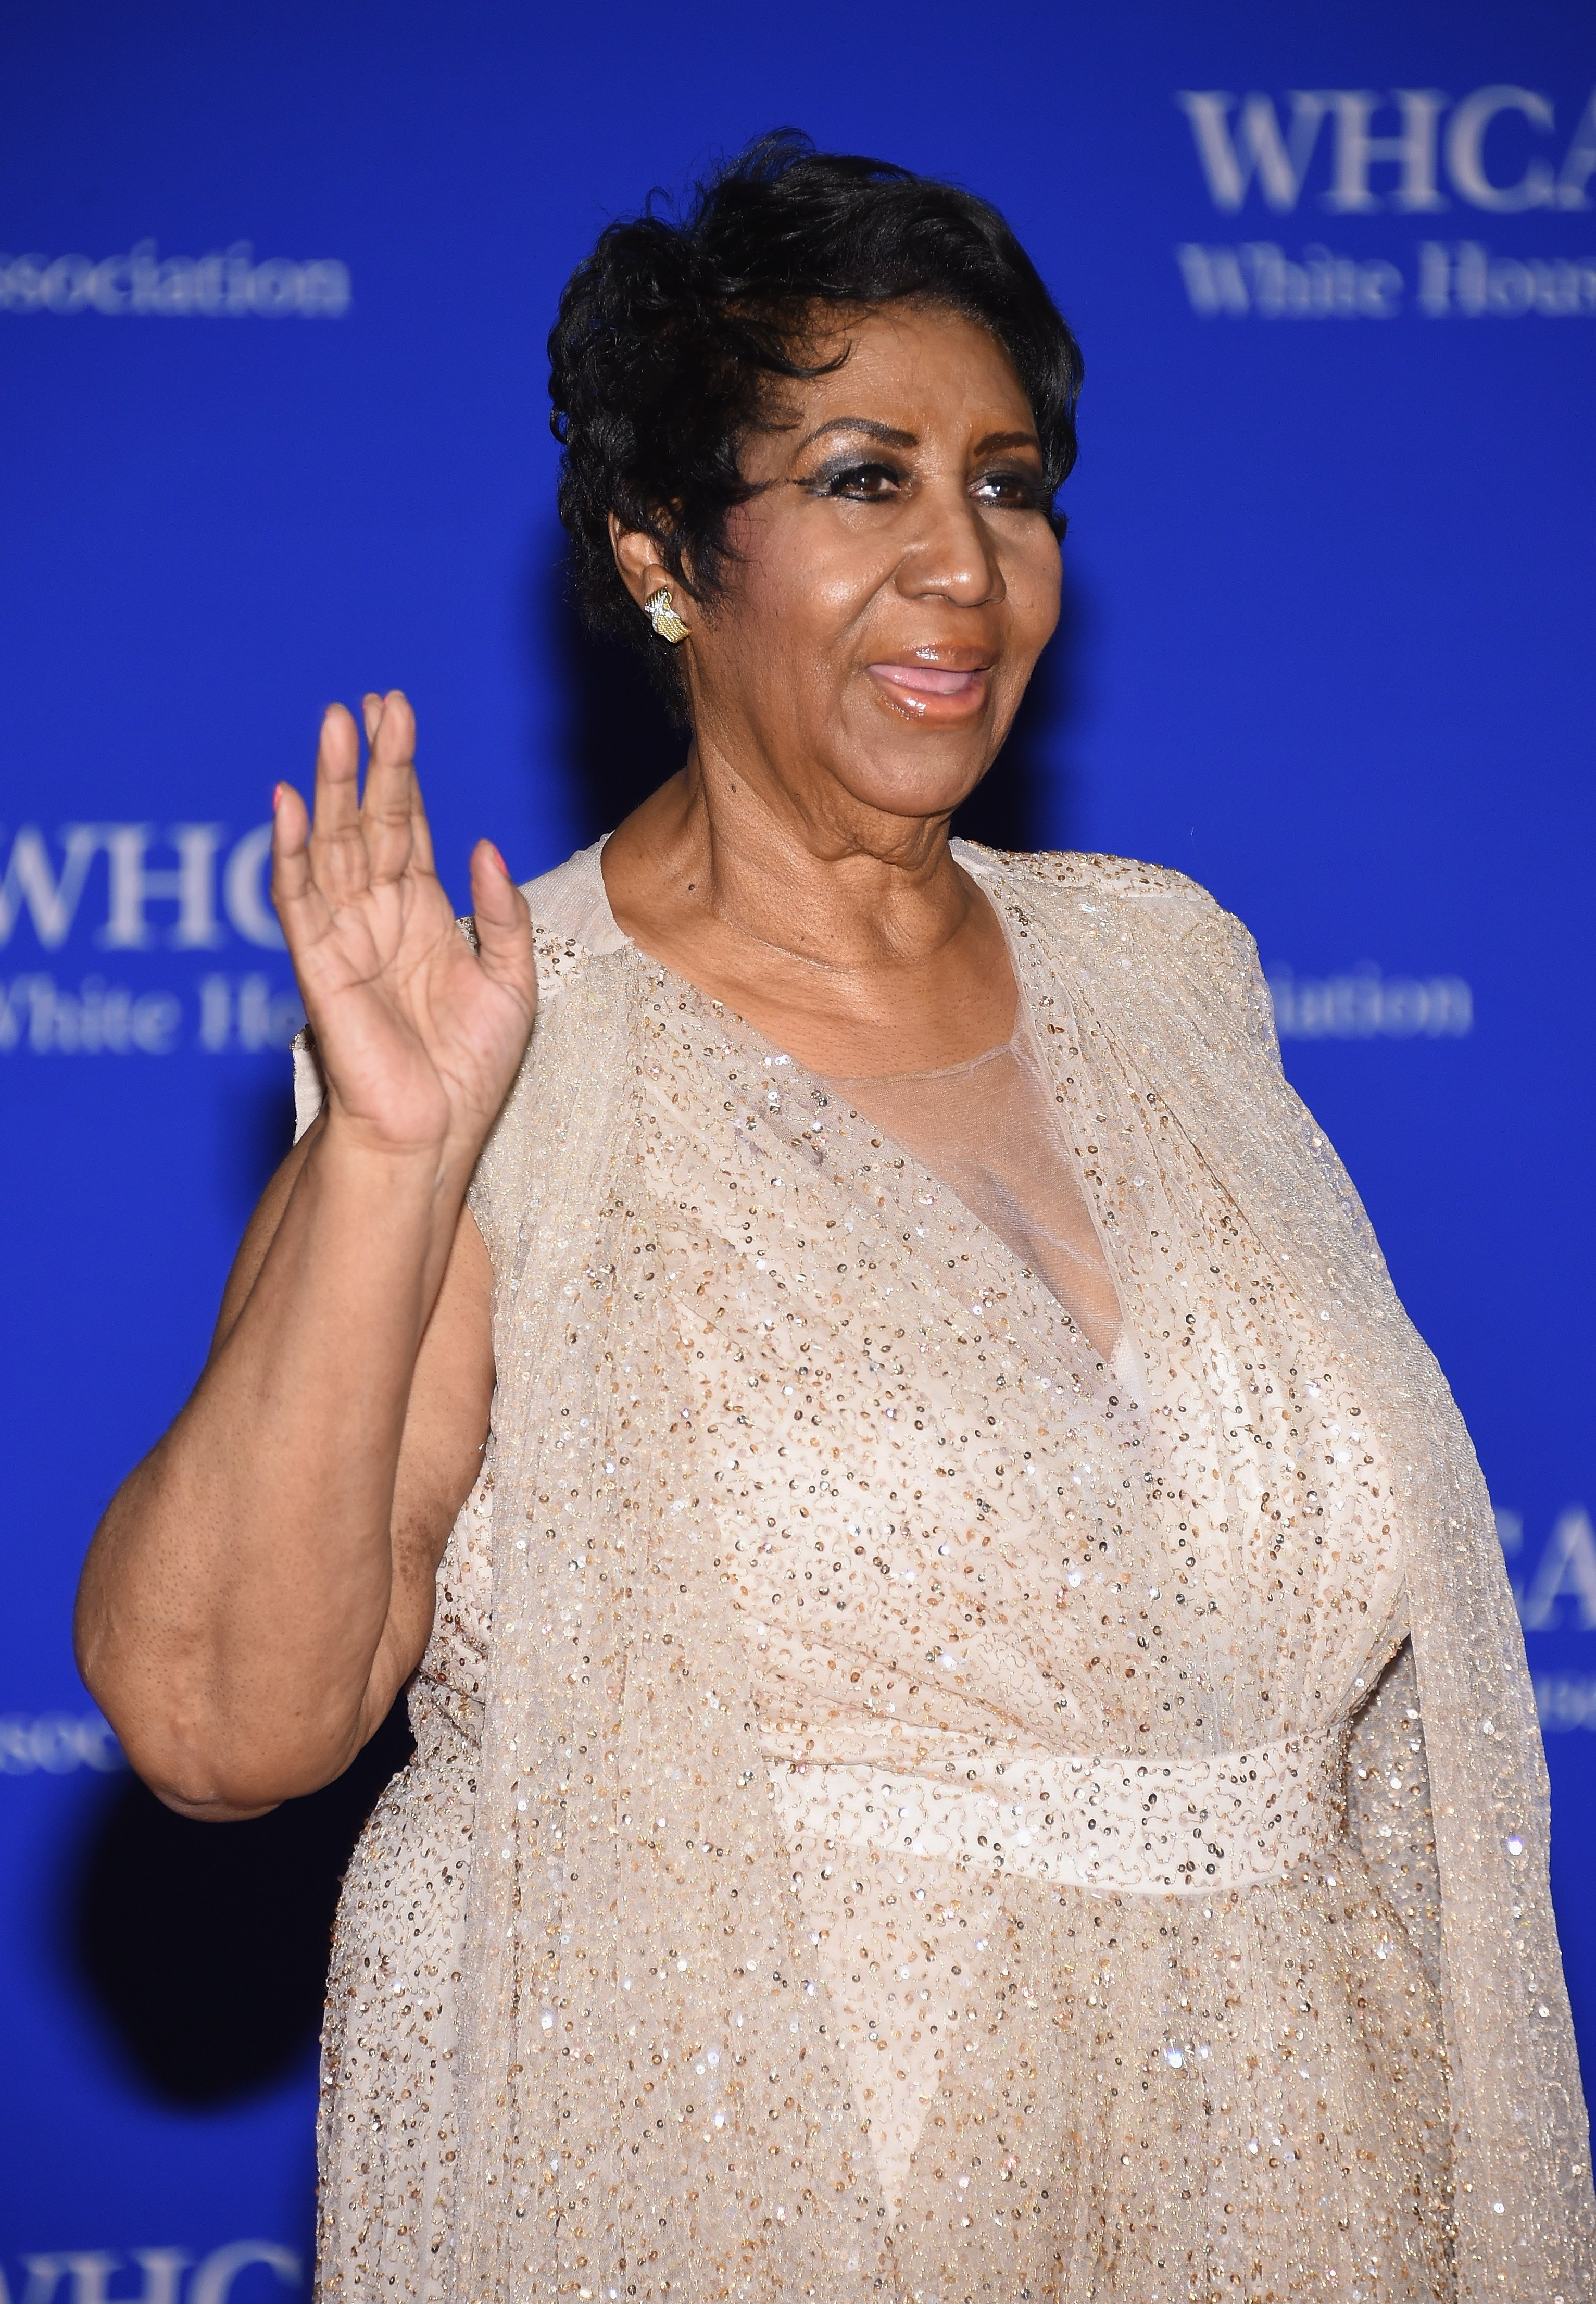 Aretha Franklin attends the 102nd White House Correspondents' Association Dinner on April 30, 2016 in Washington, DC. | Source: Getty Images